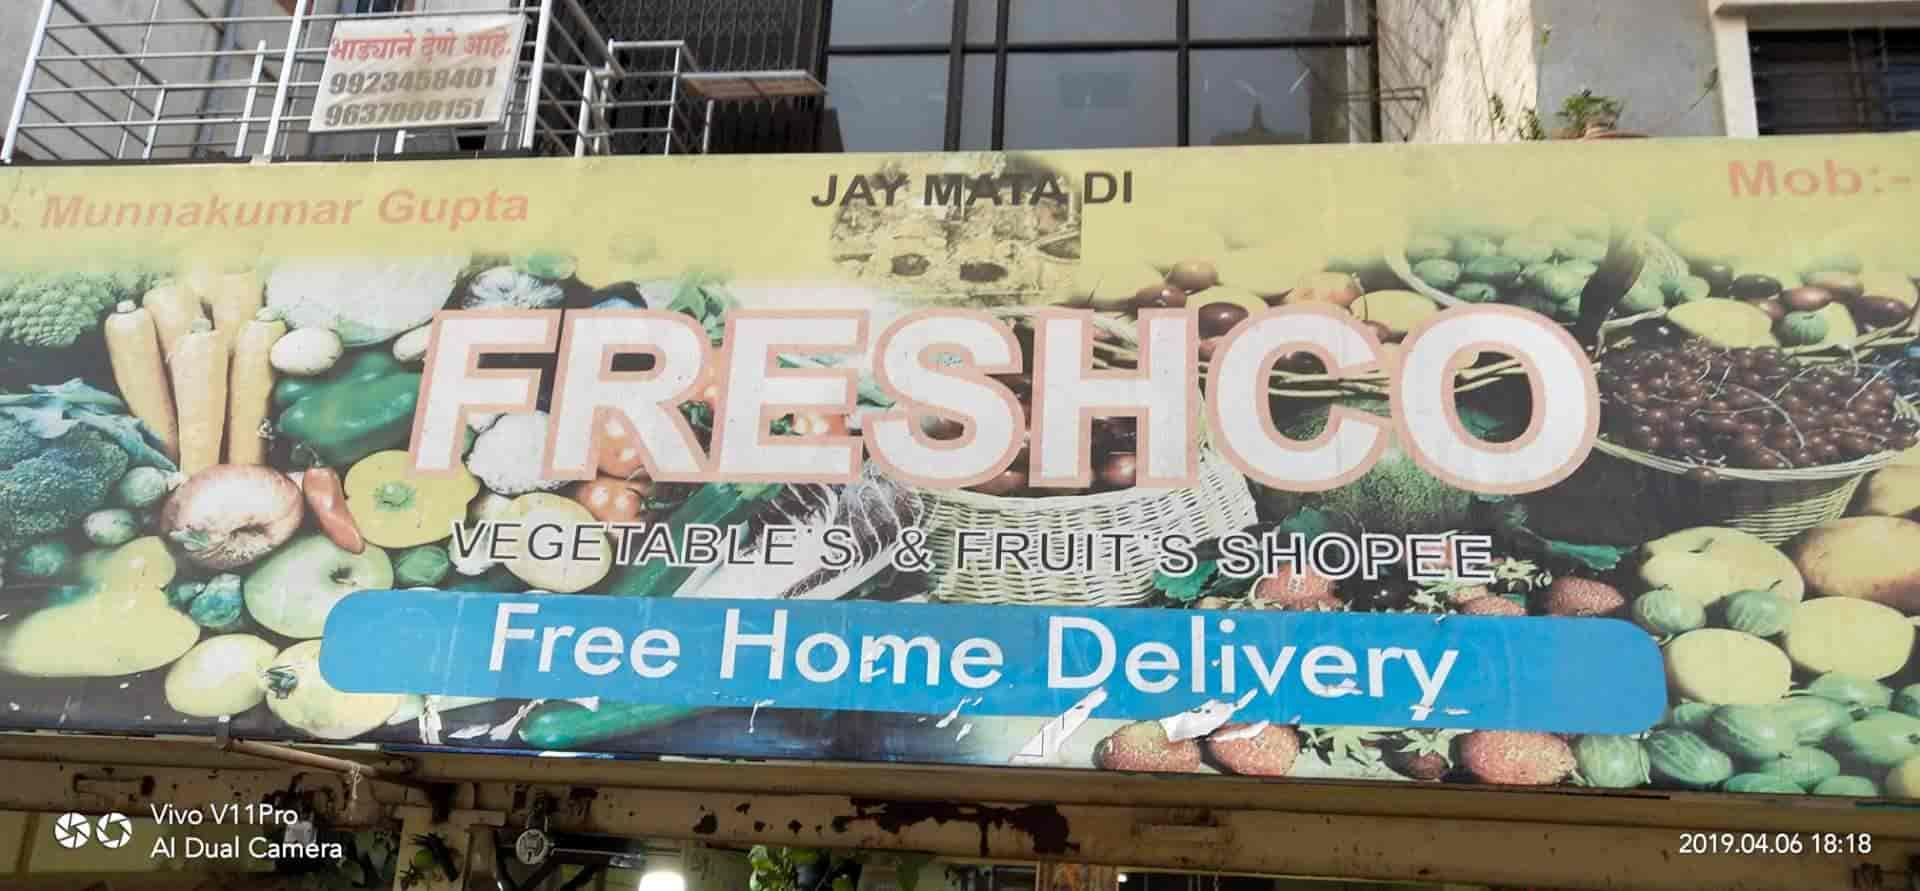 Freshco Vegetables And Fruits, Rahatani - Vegetable Home Delivery